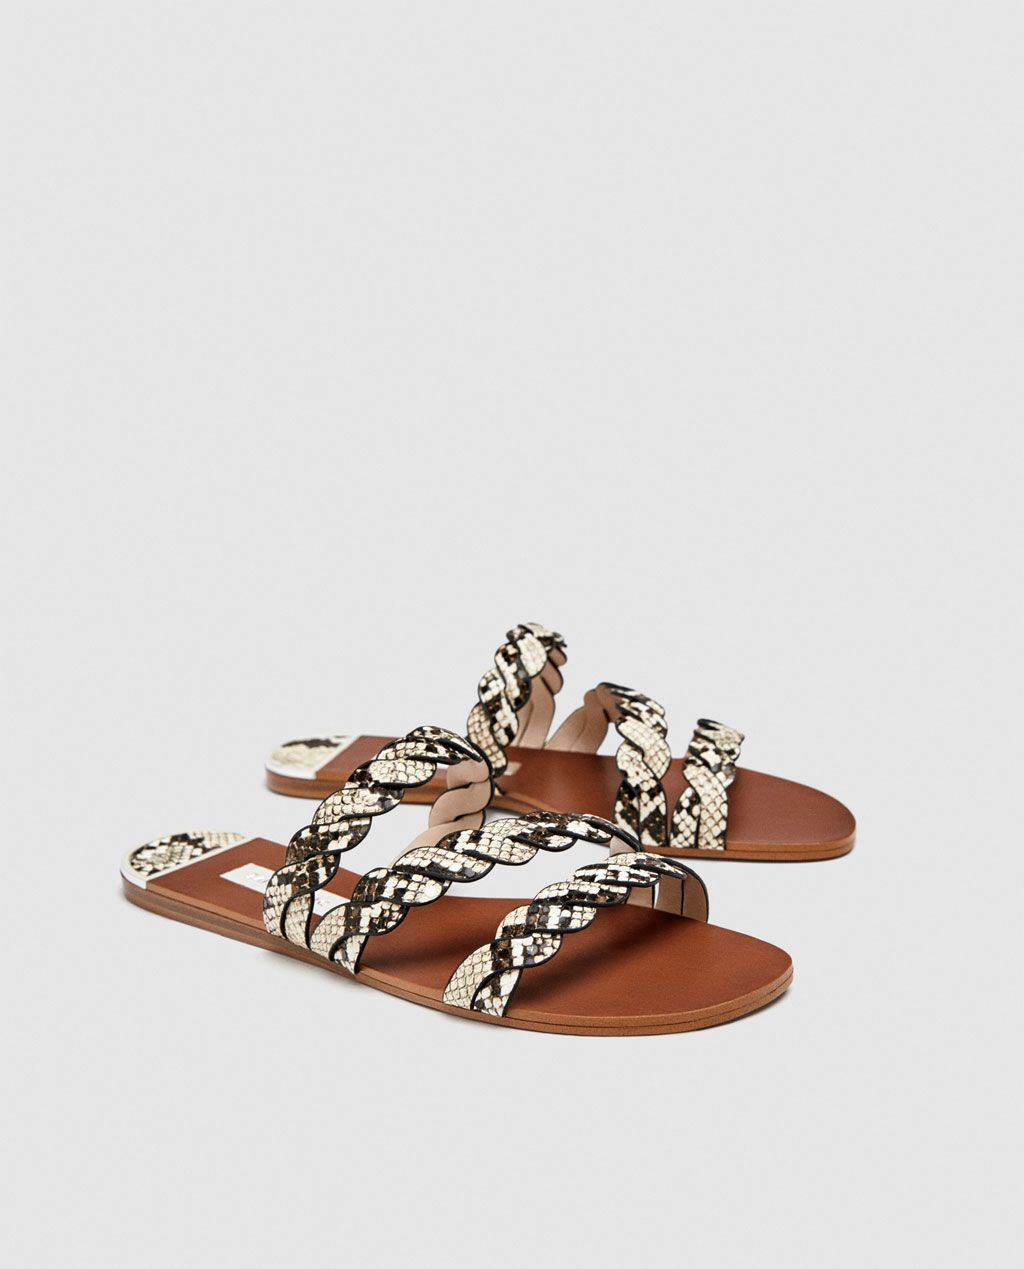 45cd7c05169e8c Image 5 of SANDALS WITH BRAIDED ANIMAL PRINT STRAPS from Zara ...